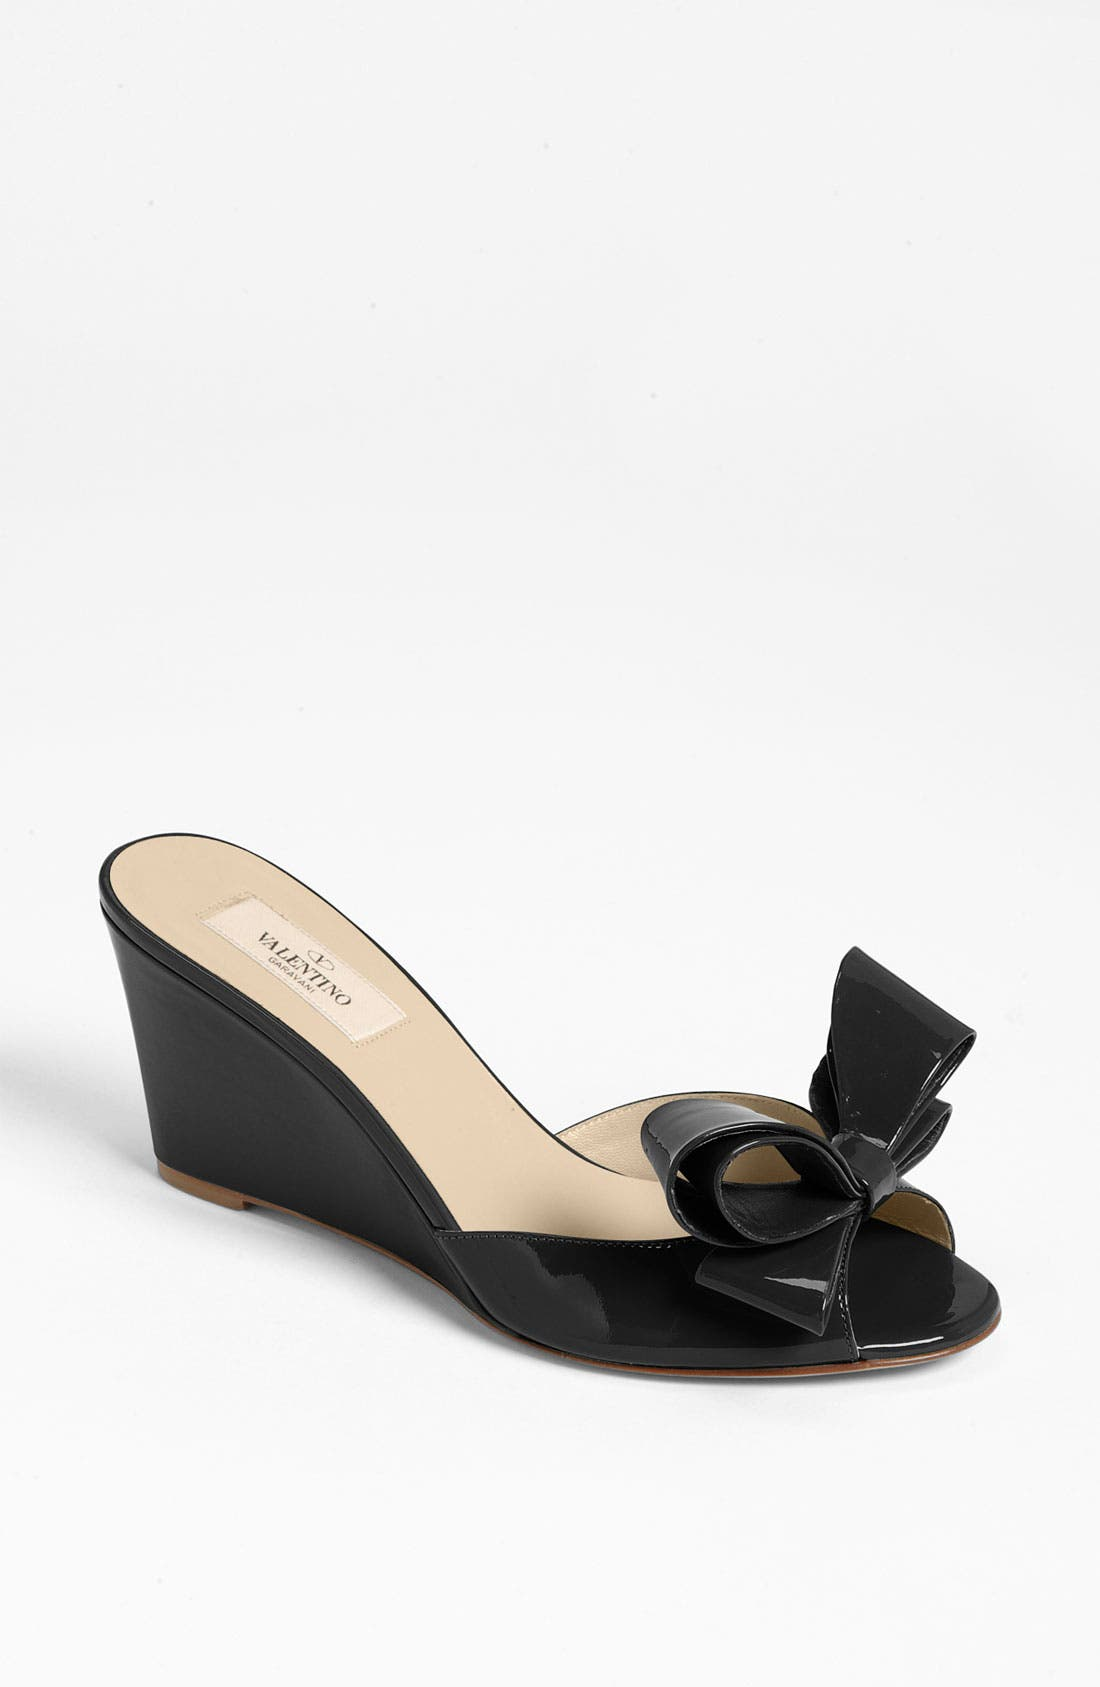 Alternate Image 1 Selected - Valentino Bow Wedge Sandal